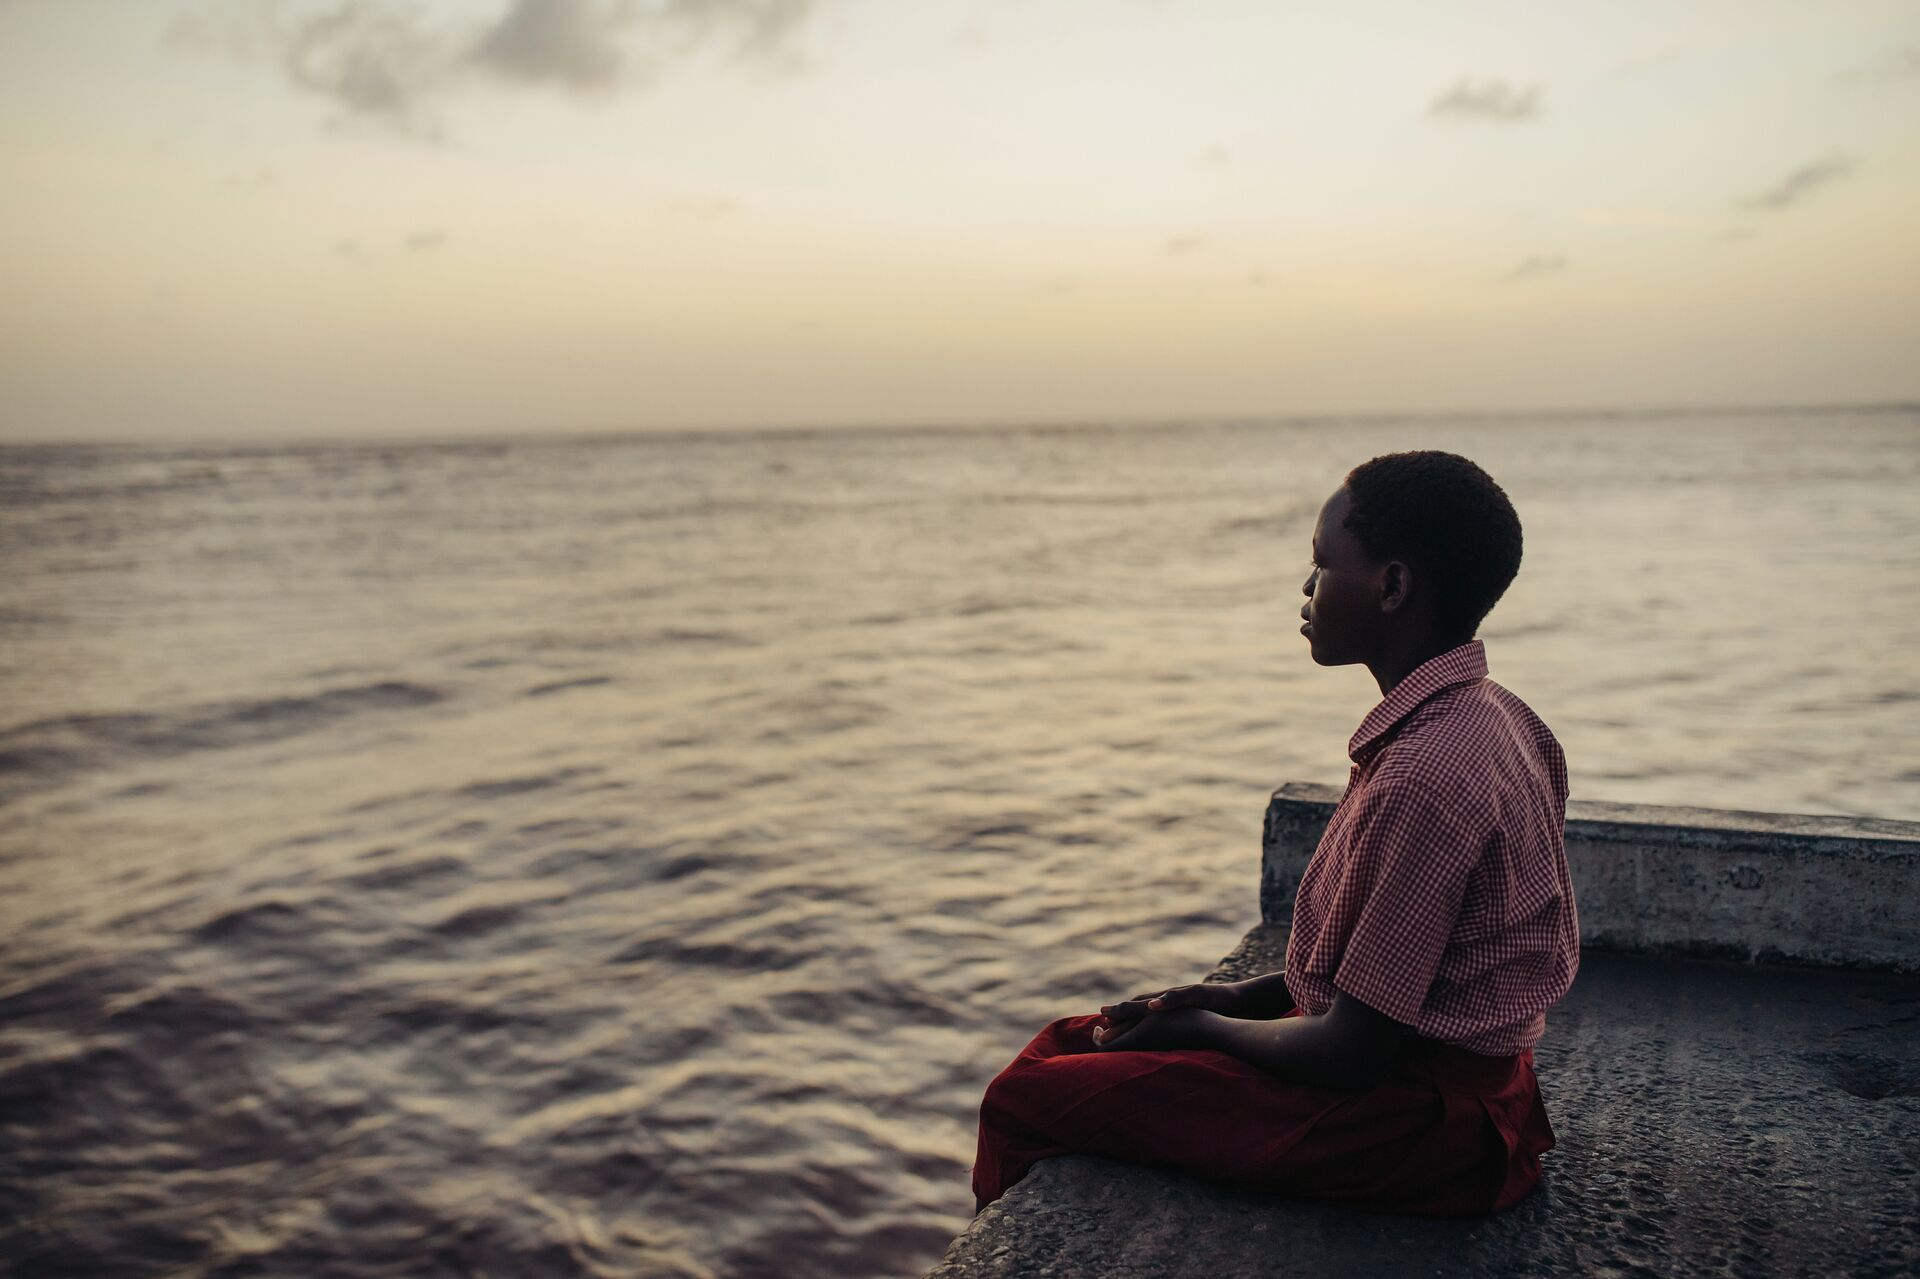 A girl sits on a dock looking out onto the water at dusk.